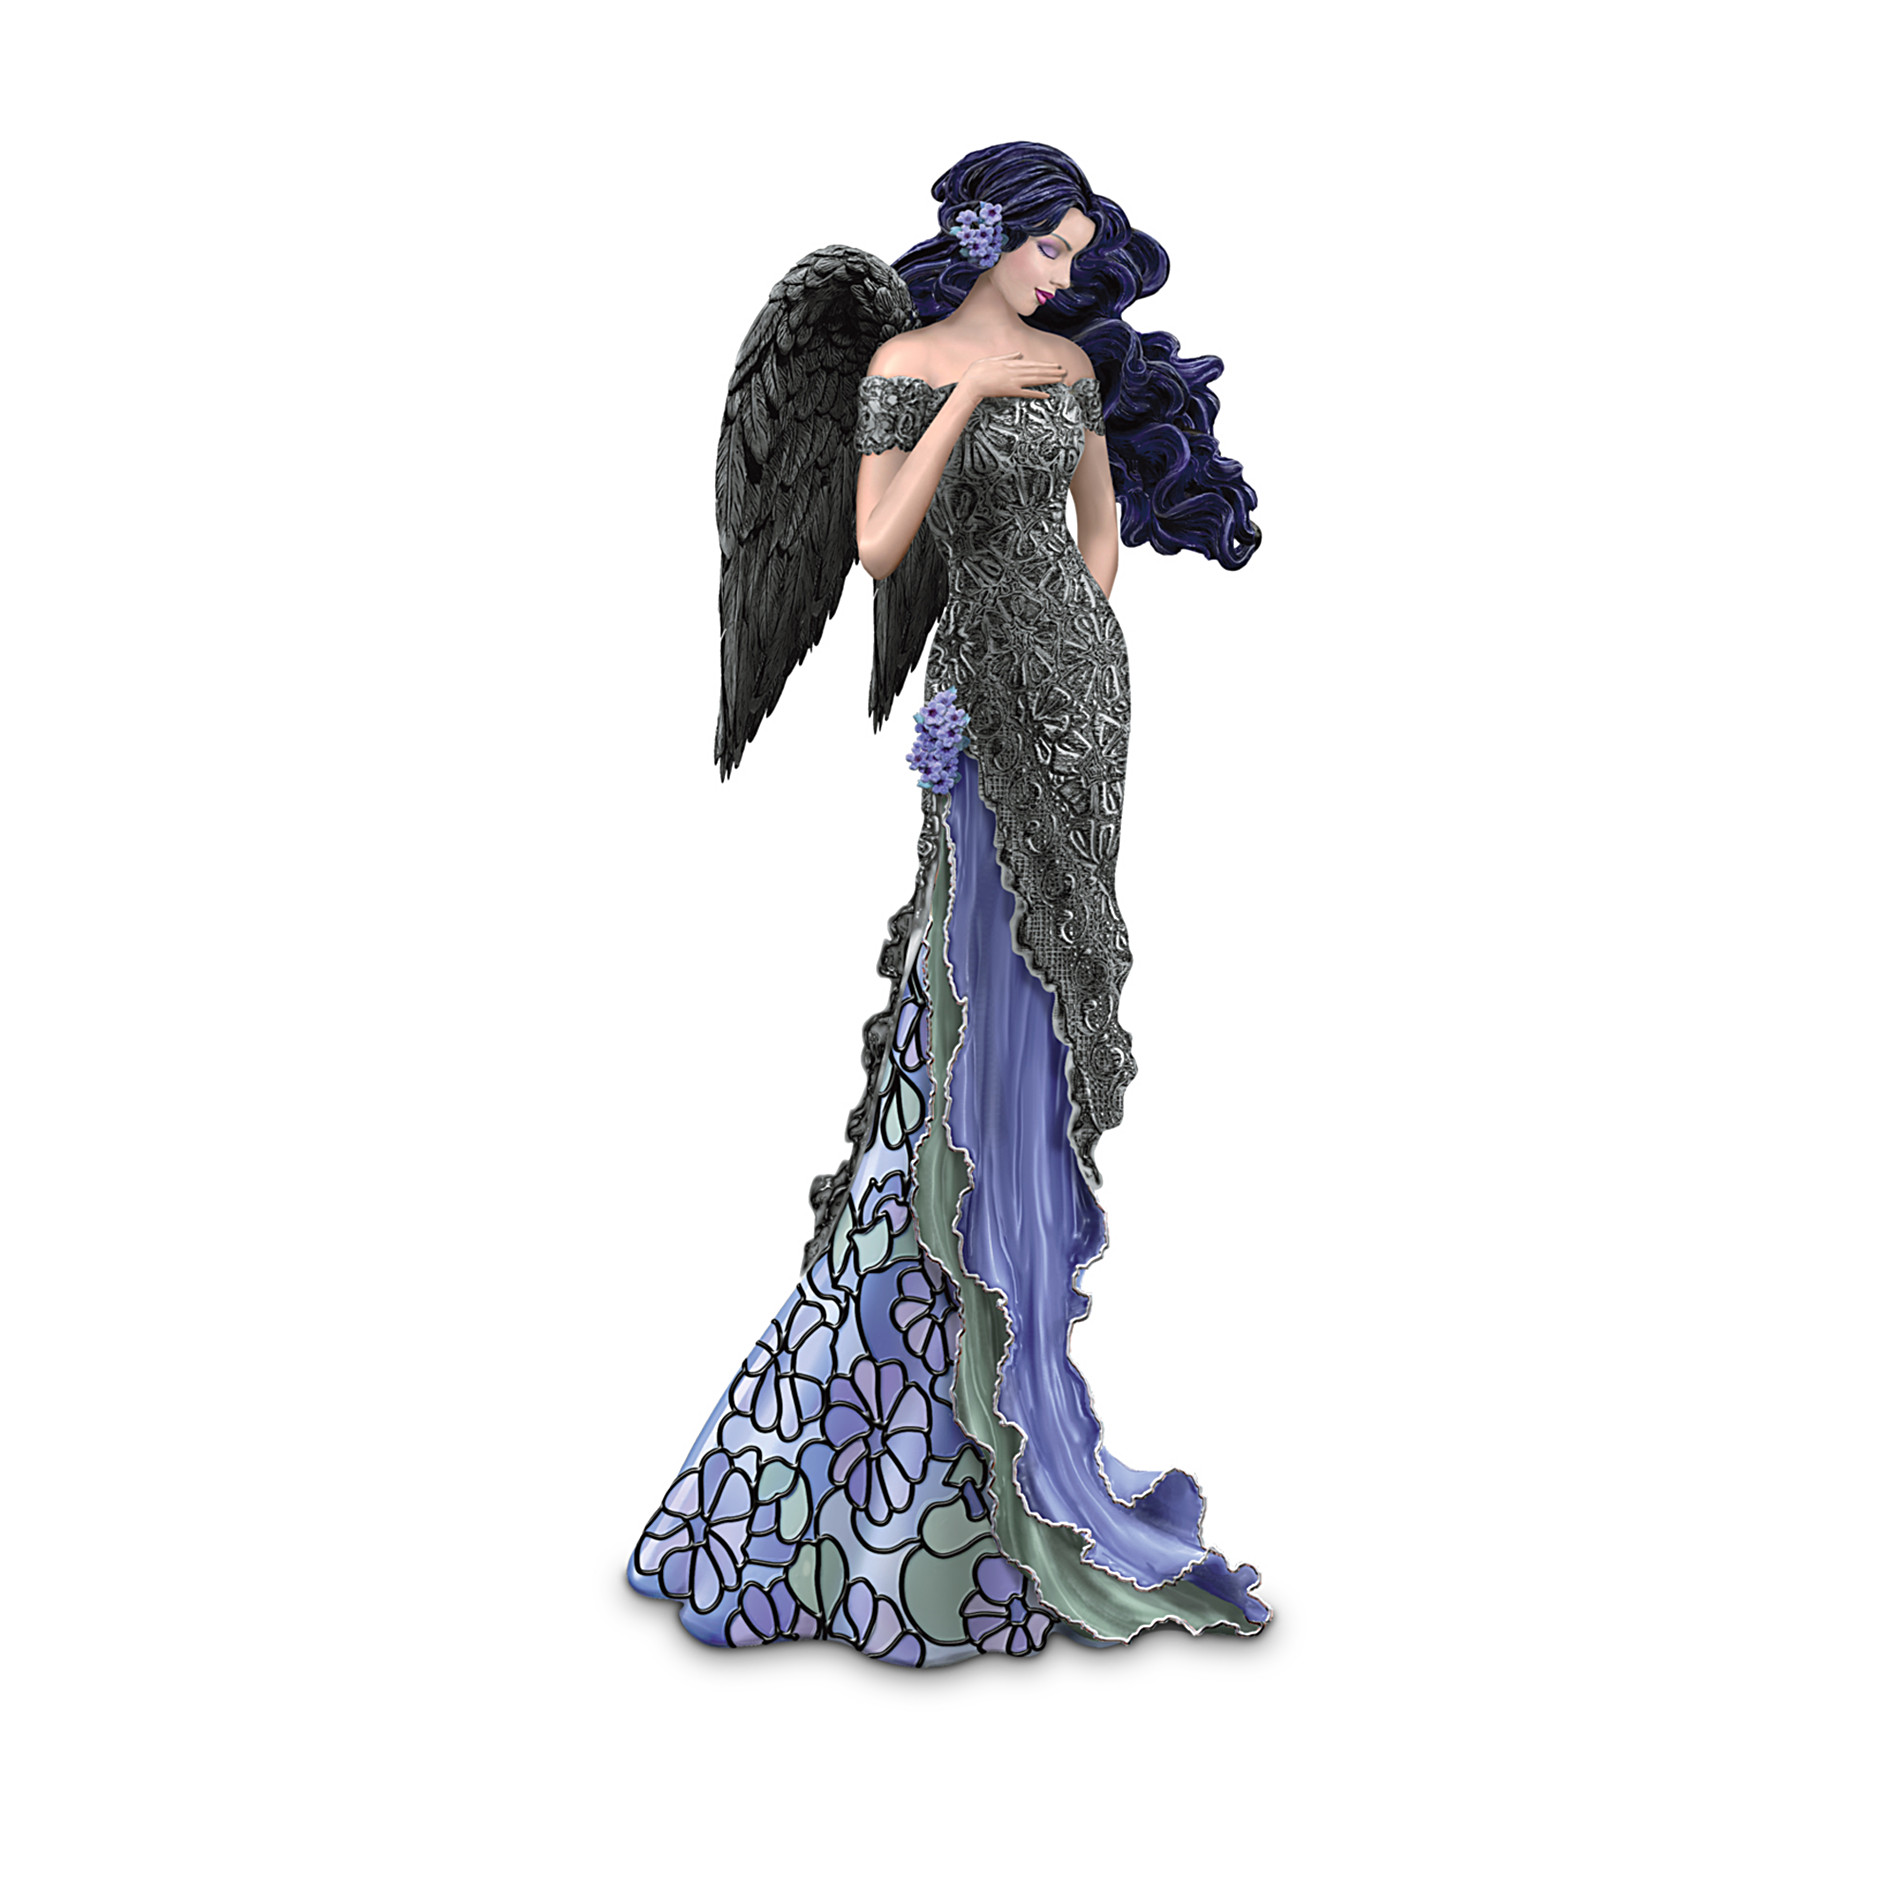 The Hamilton Collection Angelic Moonlit Beauty Angel Figurine With Louis Comfort Tiffany-Style Stained-Glass Art at Sears.com